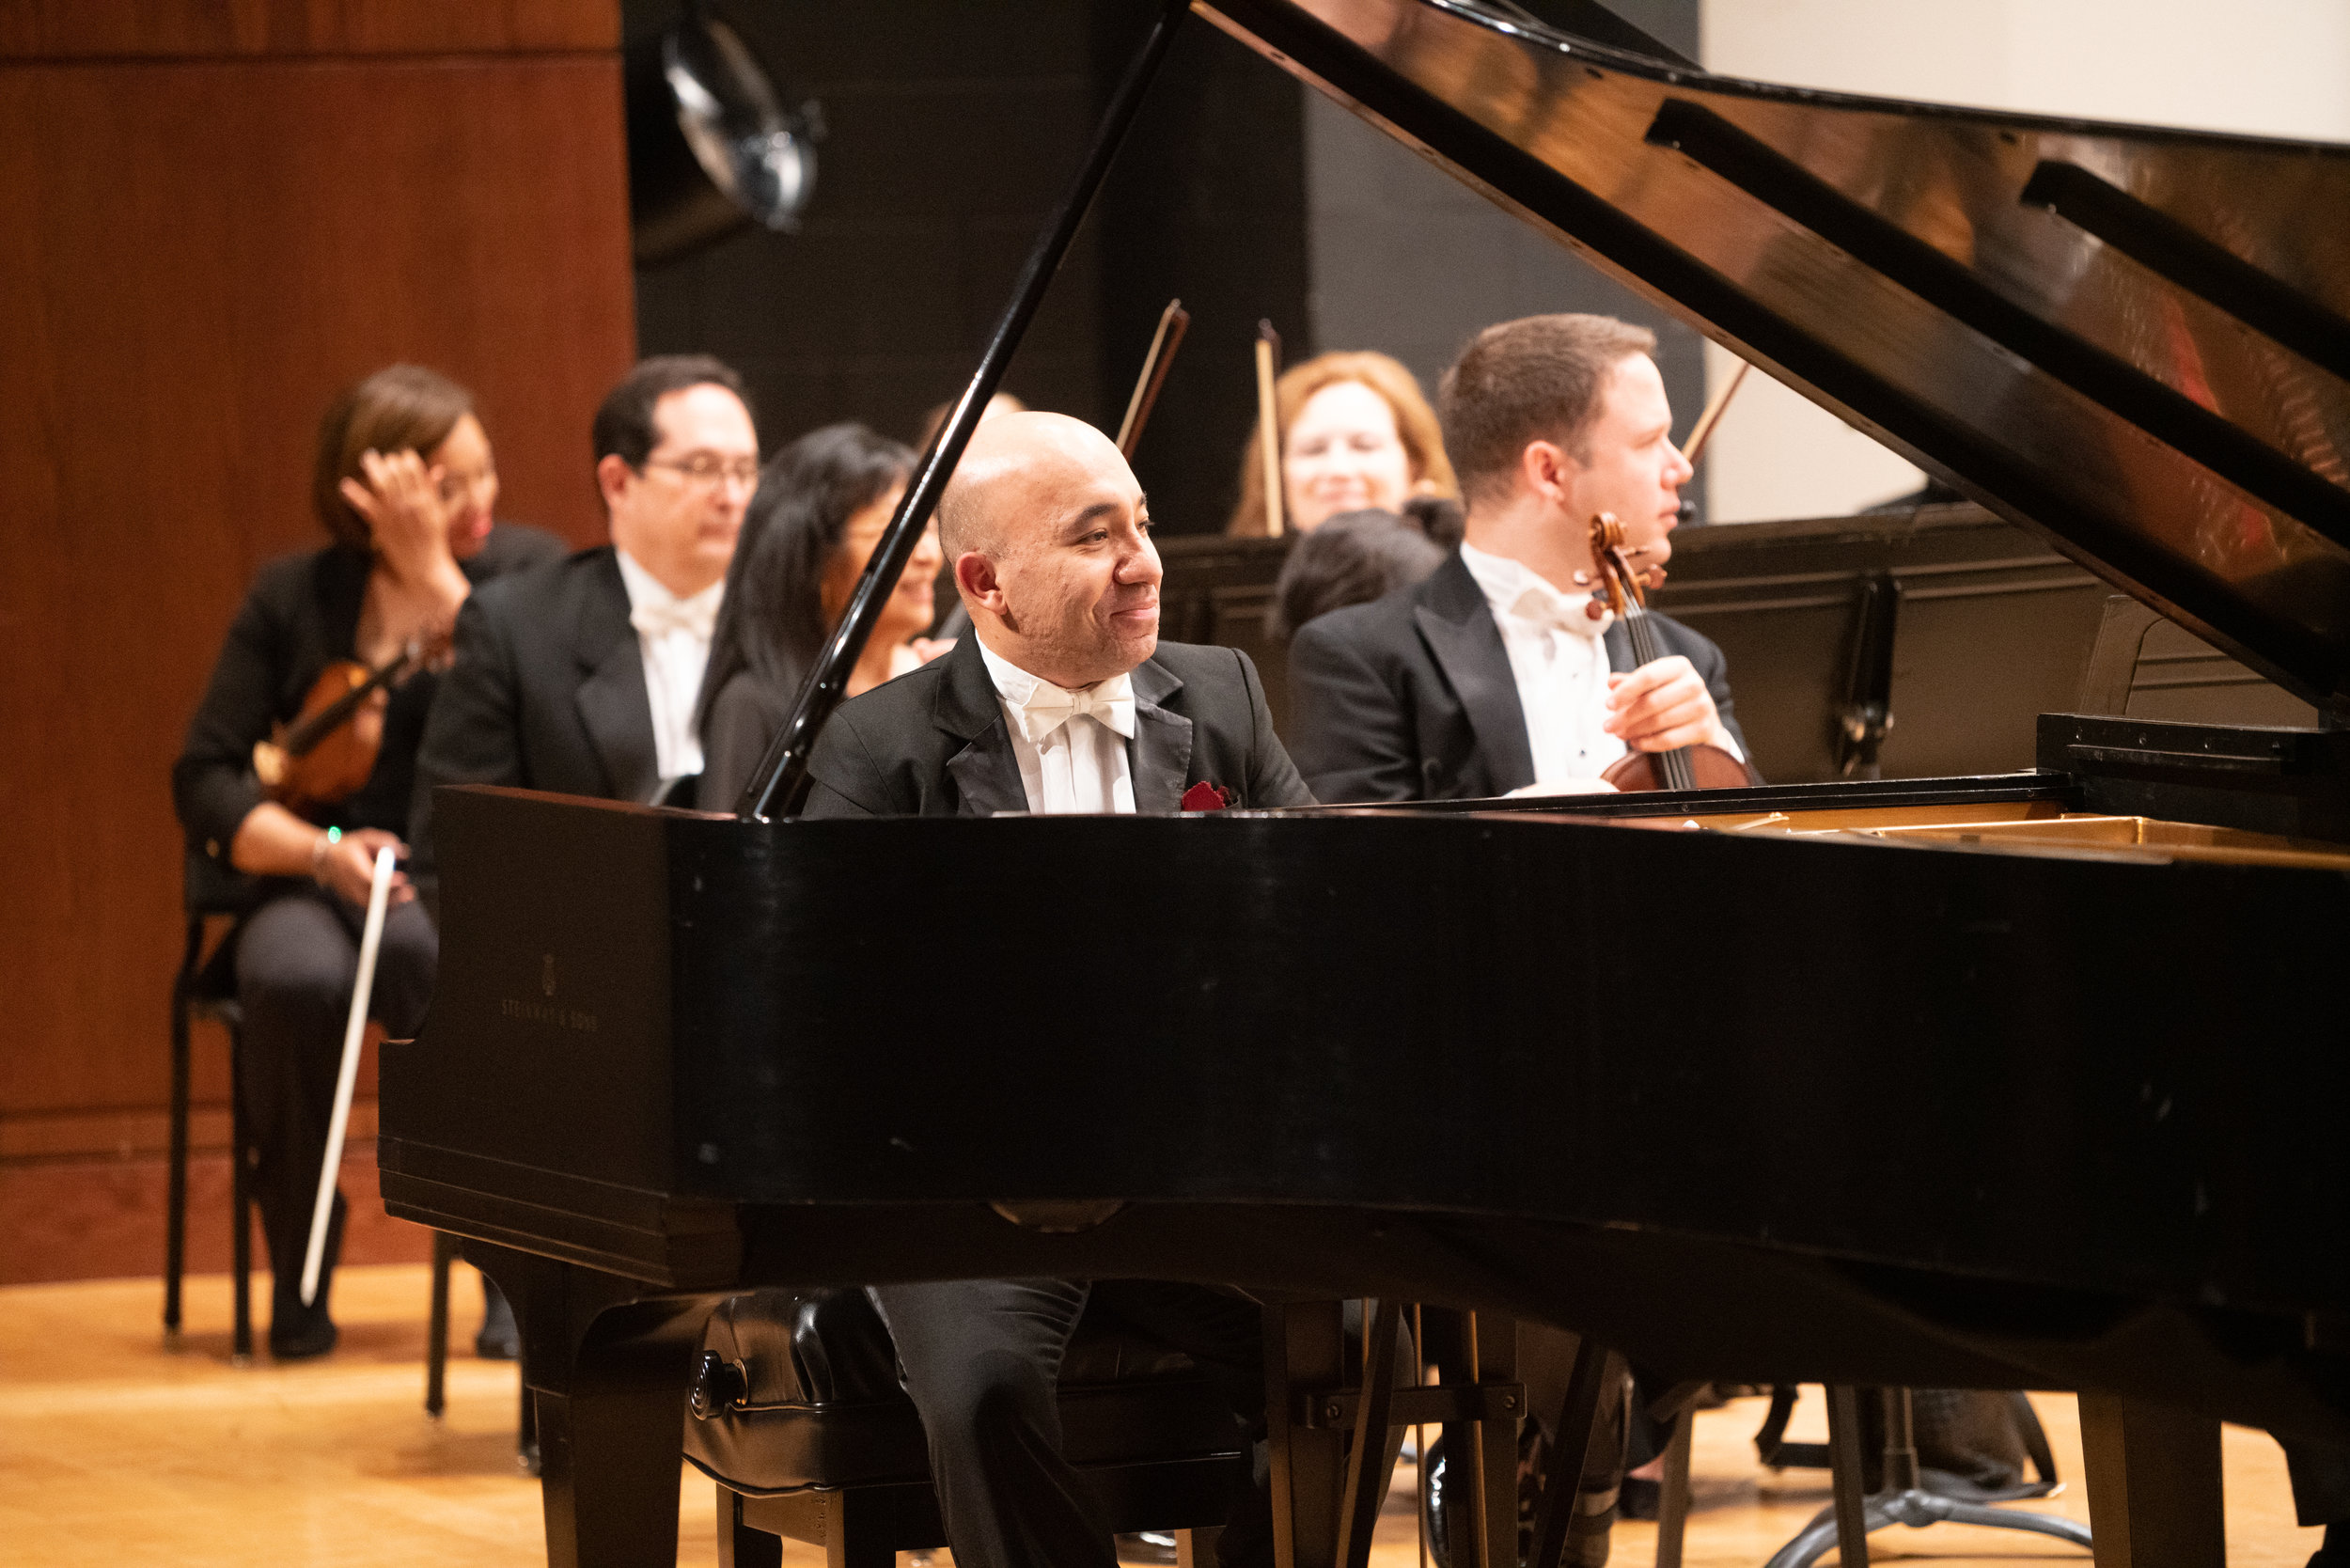 Guest Soloist Wael Farouk performs Rachmaninov's Piano Concerto No. 3 with the Lake Forest Symphony at the James Lumber Center.